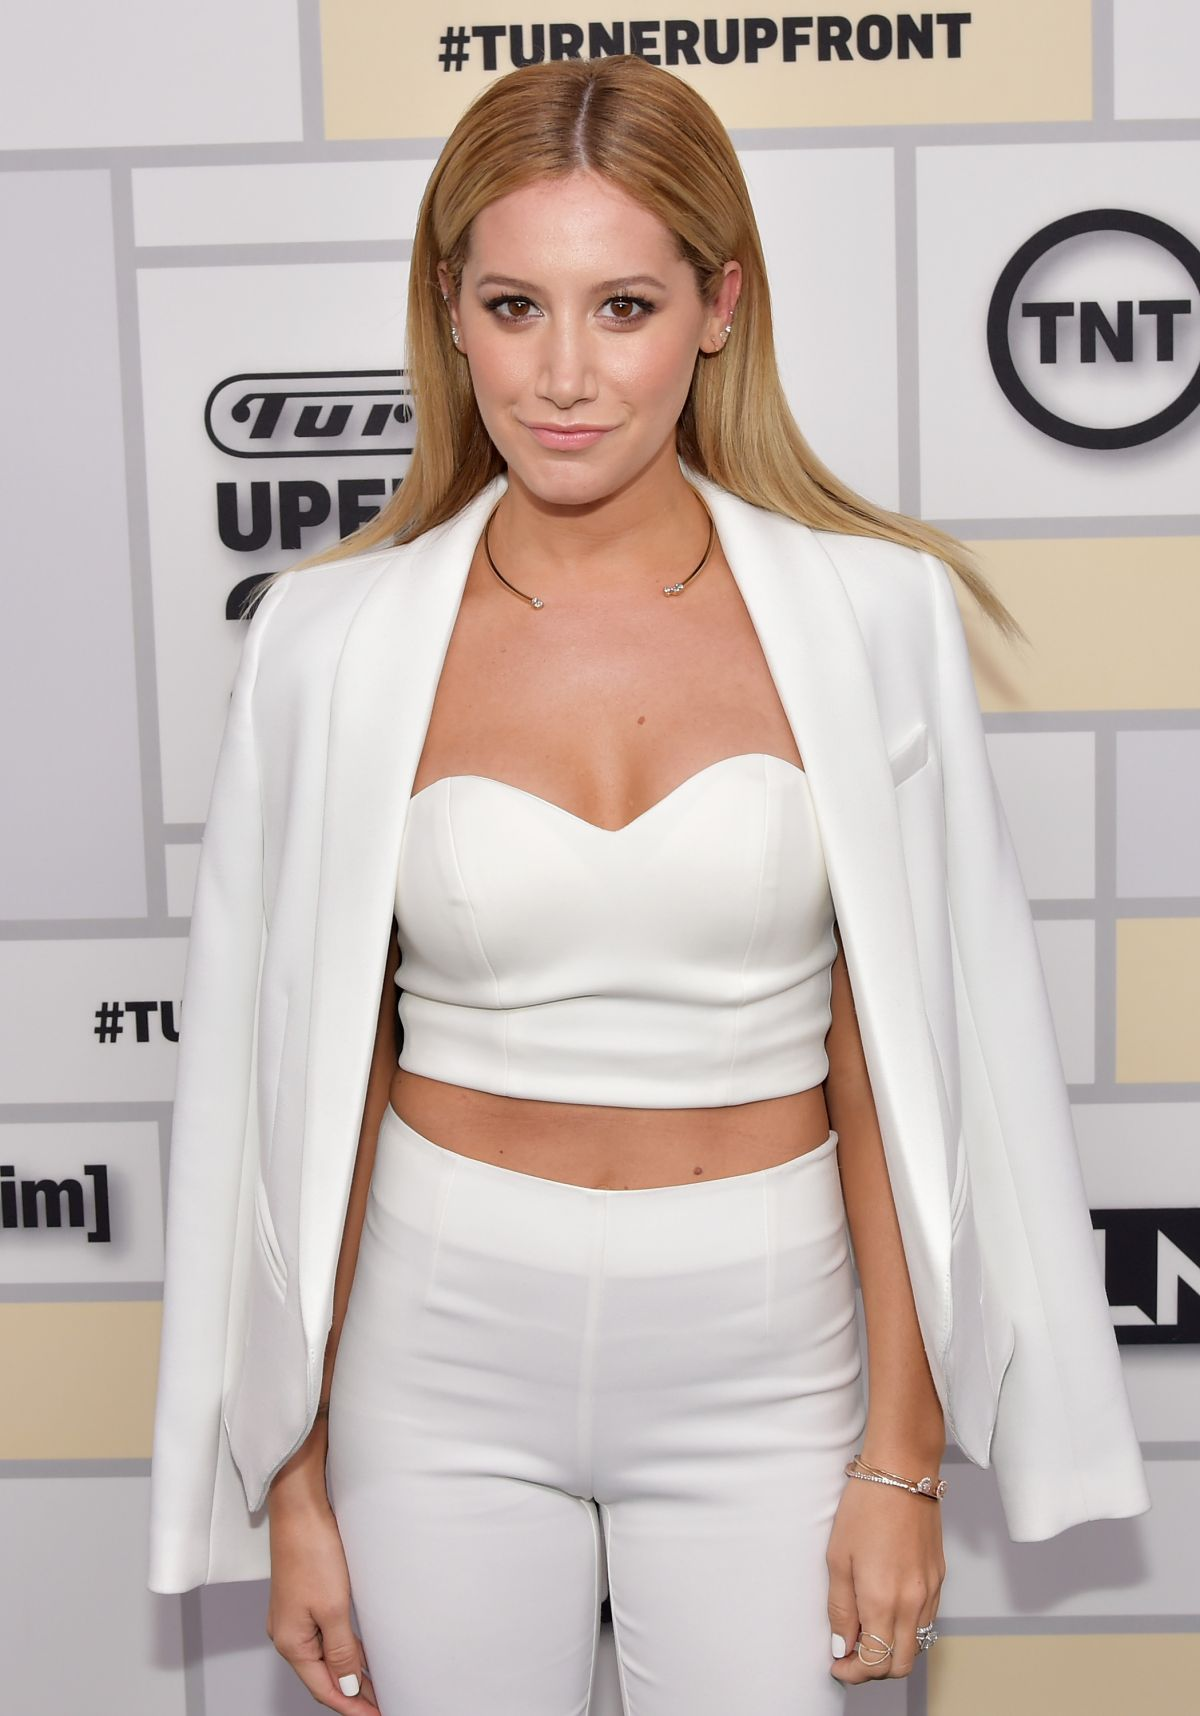 ASHLEY TISDALE at Turner Upfront 2015 in New York - HawtCelebs ...